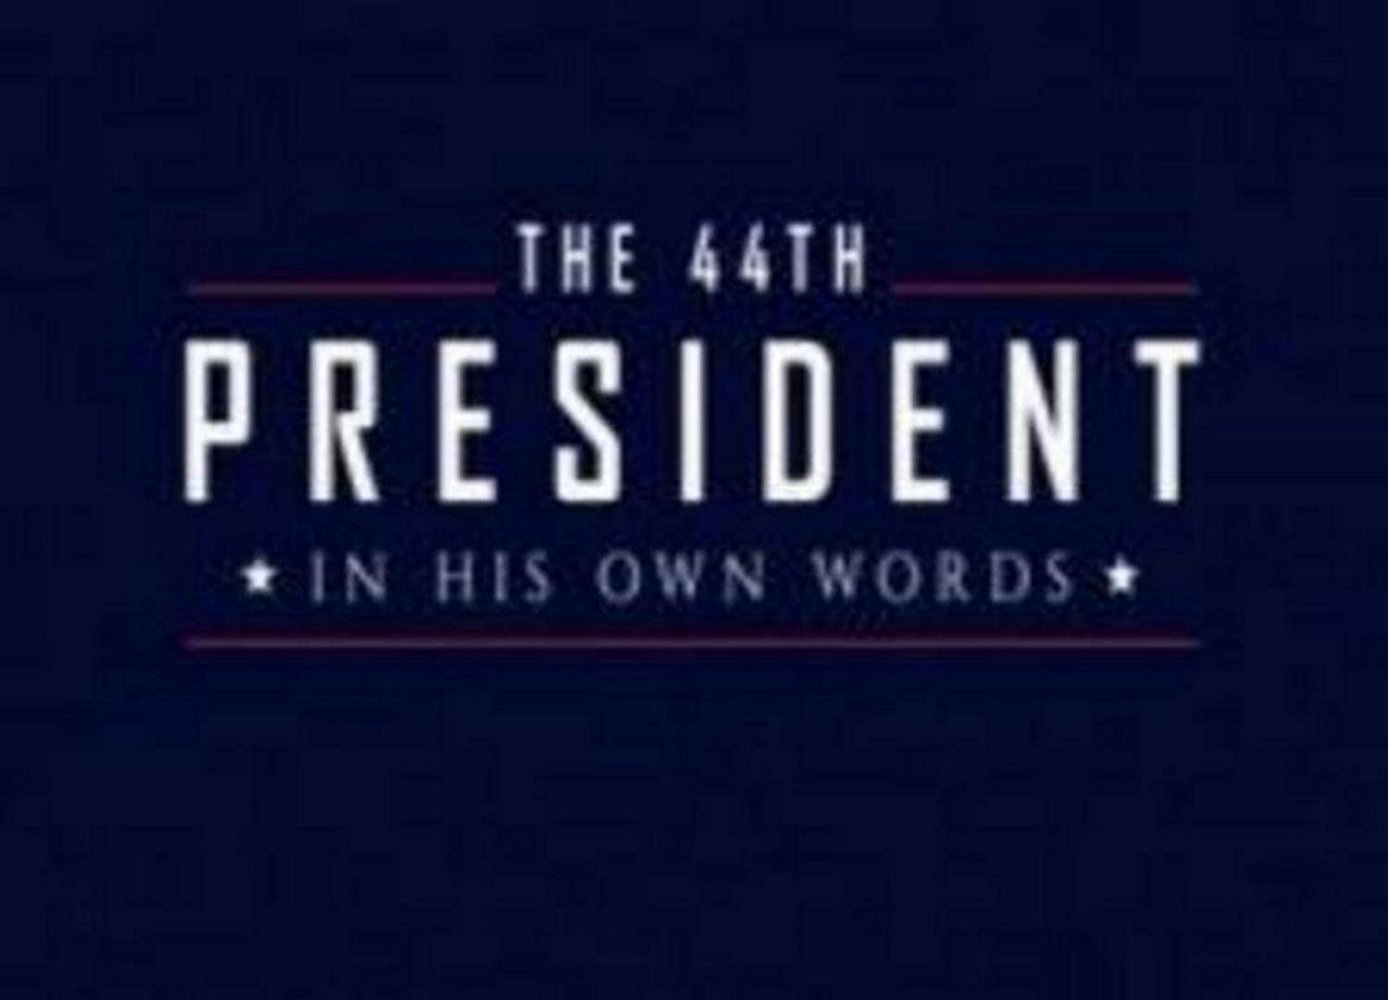 The 44th President: In His Own Words  Texas Crew Productions for History Channel (TV documentary)  Edit and re-recording.